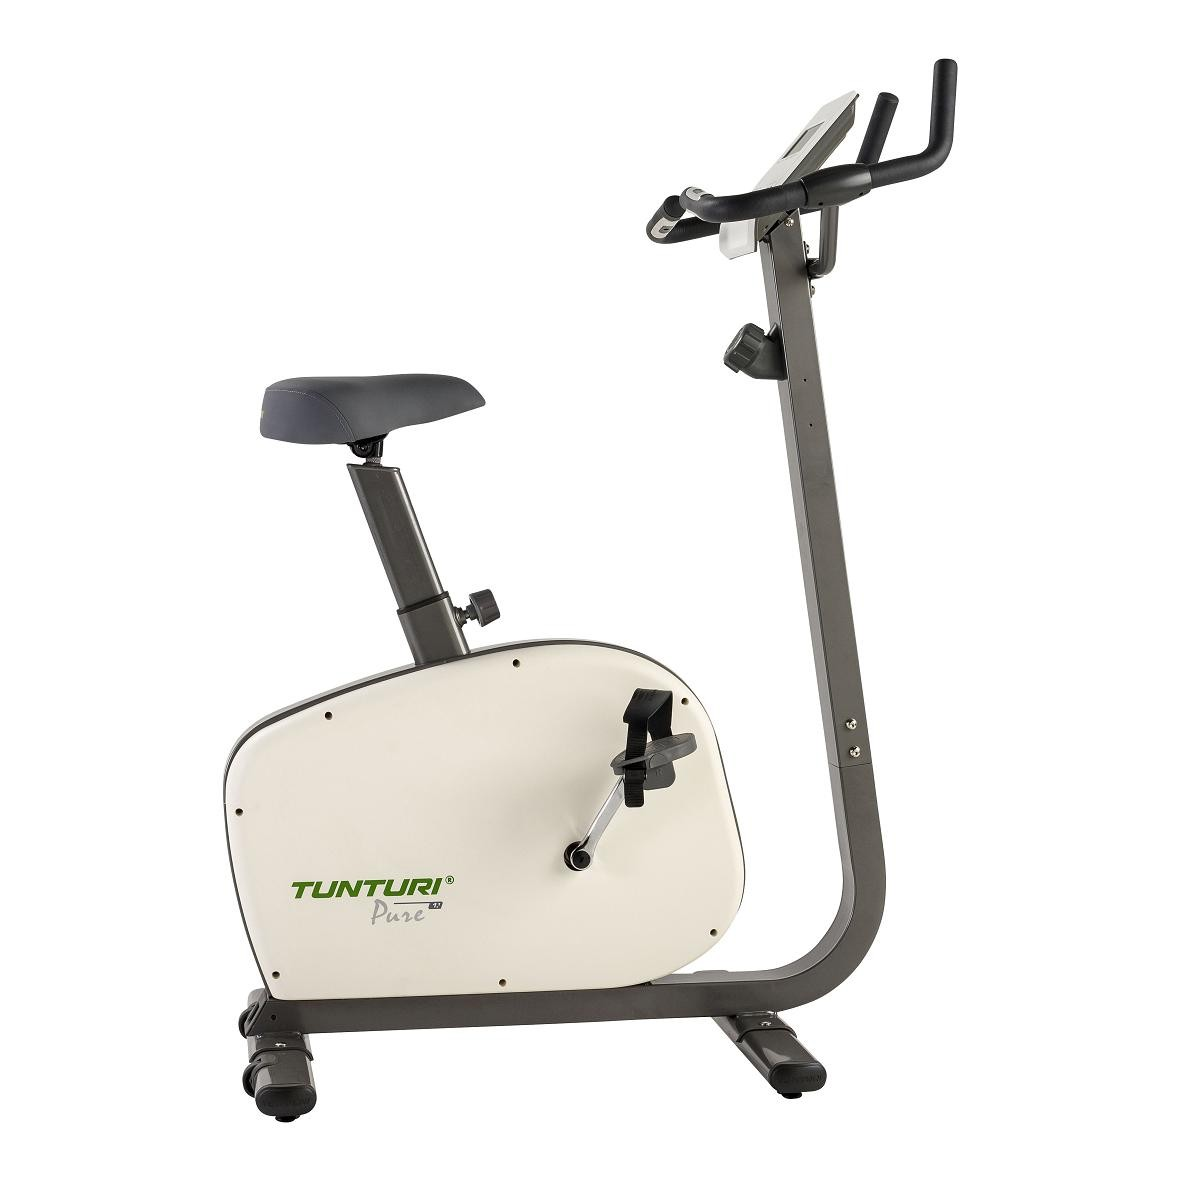 Tunturi Pure Bike 1.1 Hometrainer